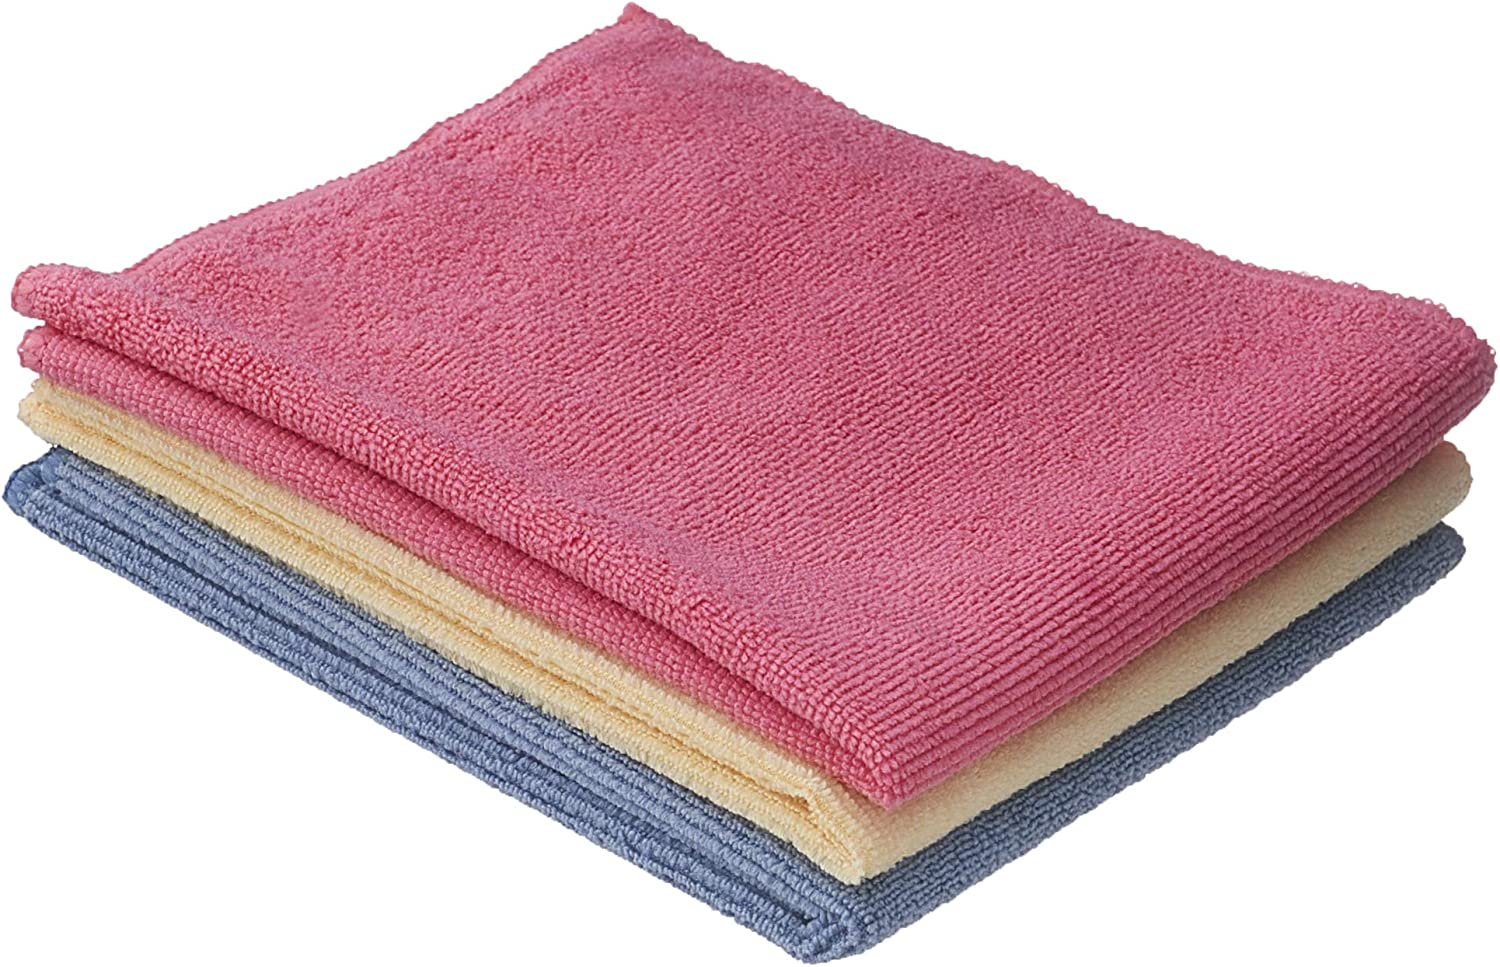 Superio Microfiber Wash Cloth 3-Pack 12x12 Inch, Red Blue and Yellow Micro Fiber Cleaning Cloths, Durable Wash Cloths, Auto Wash, Home Sparkle, All Purpose Cleaner Towels